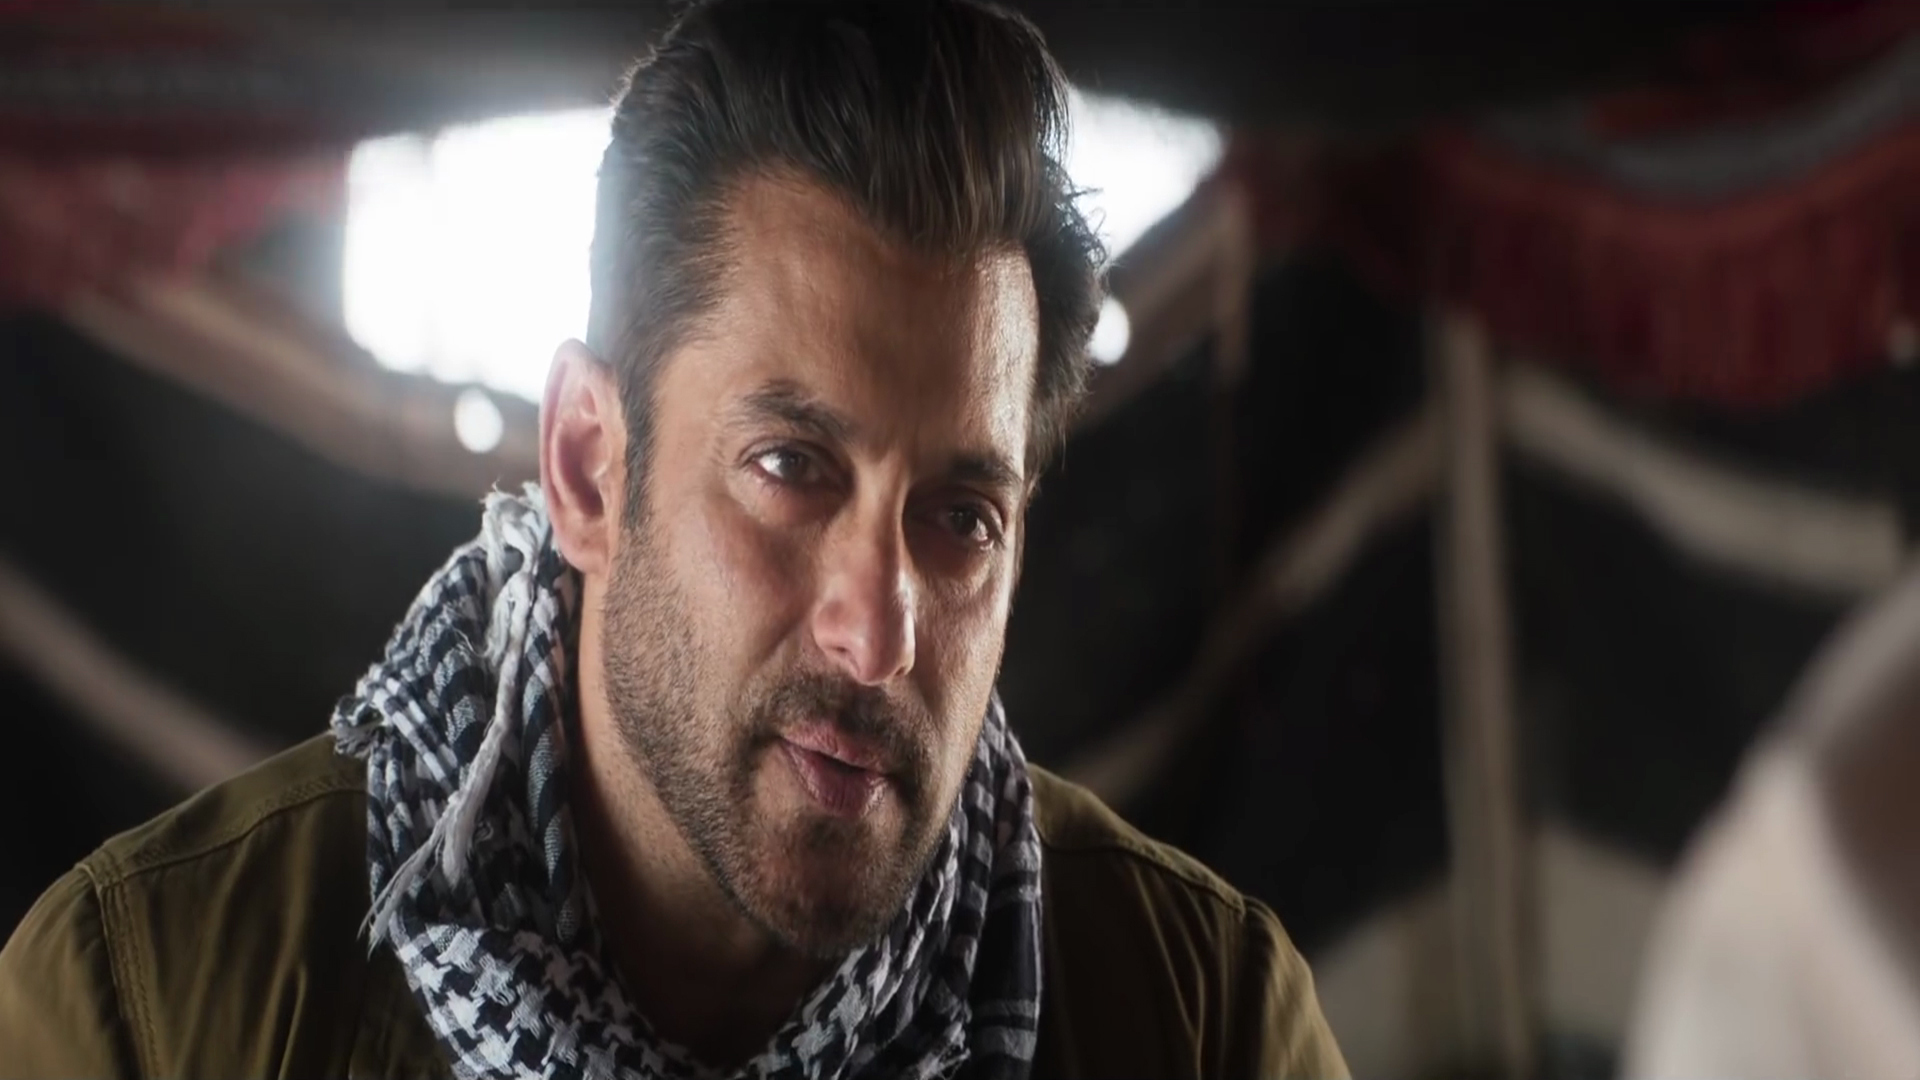 Tiger zinda hai images full hd downloading movie